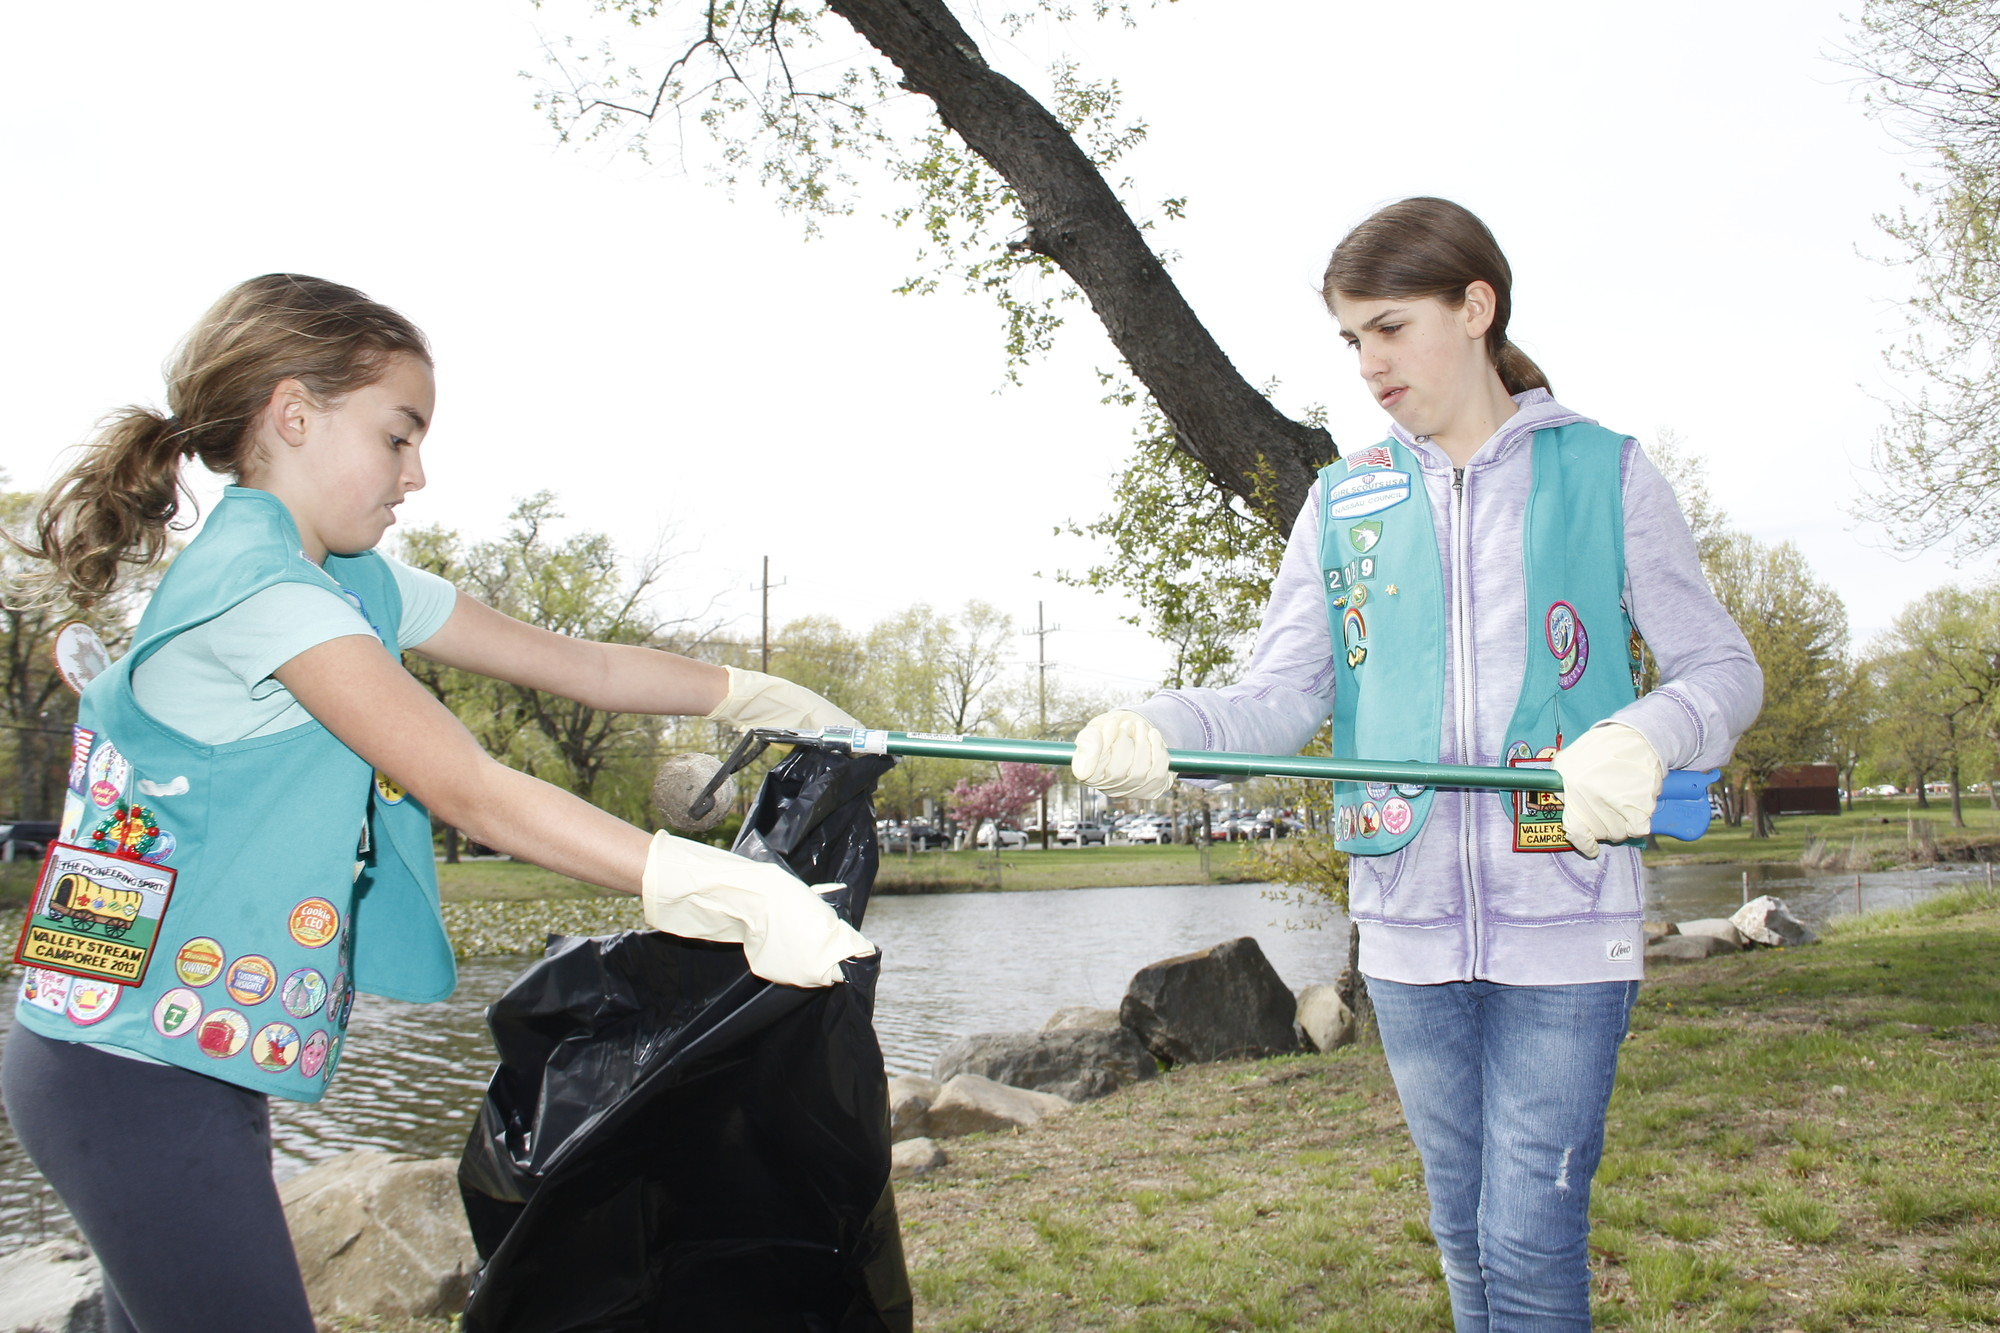 Sara Schaefer and Bridget Sharp from Troop 2029 did their part to help clean up Cahill Park in Valley Stream.